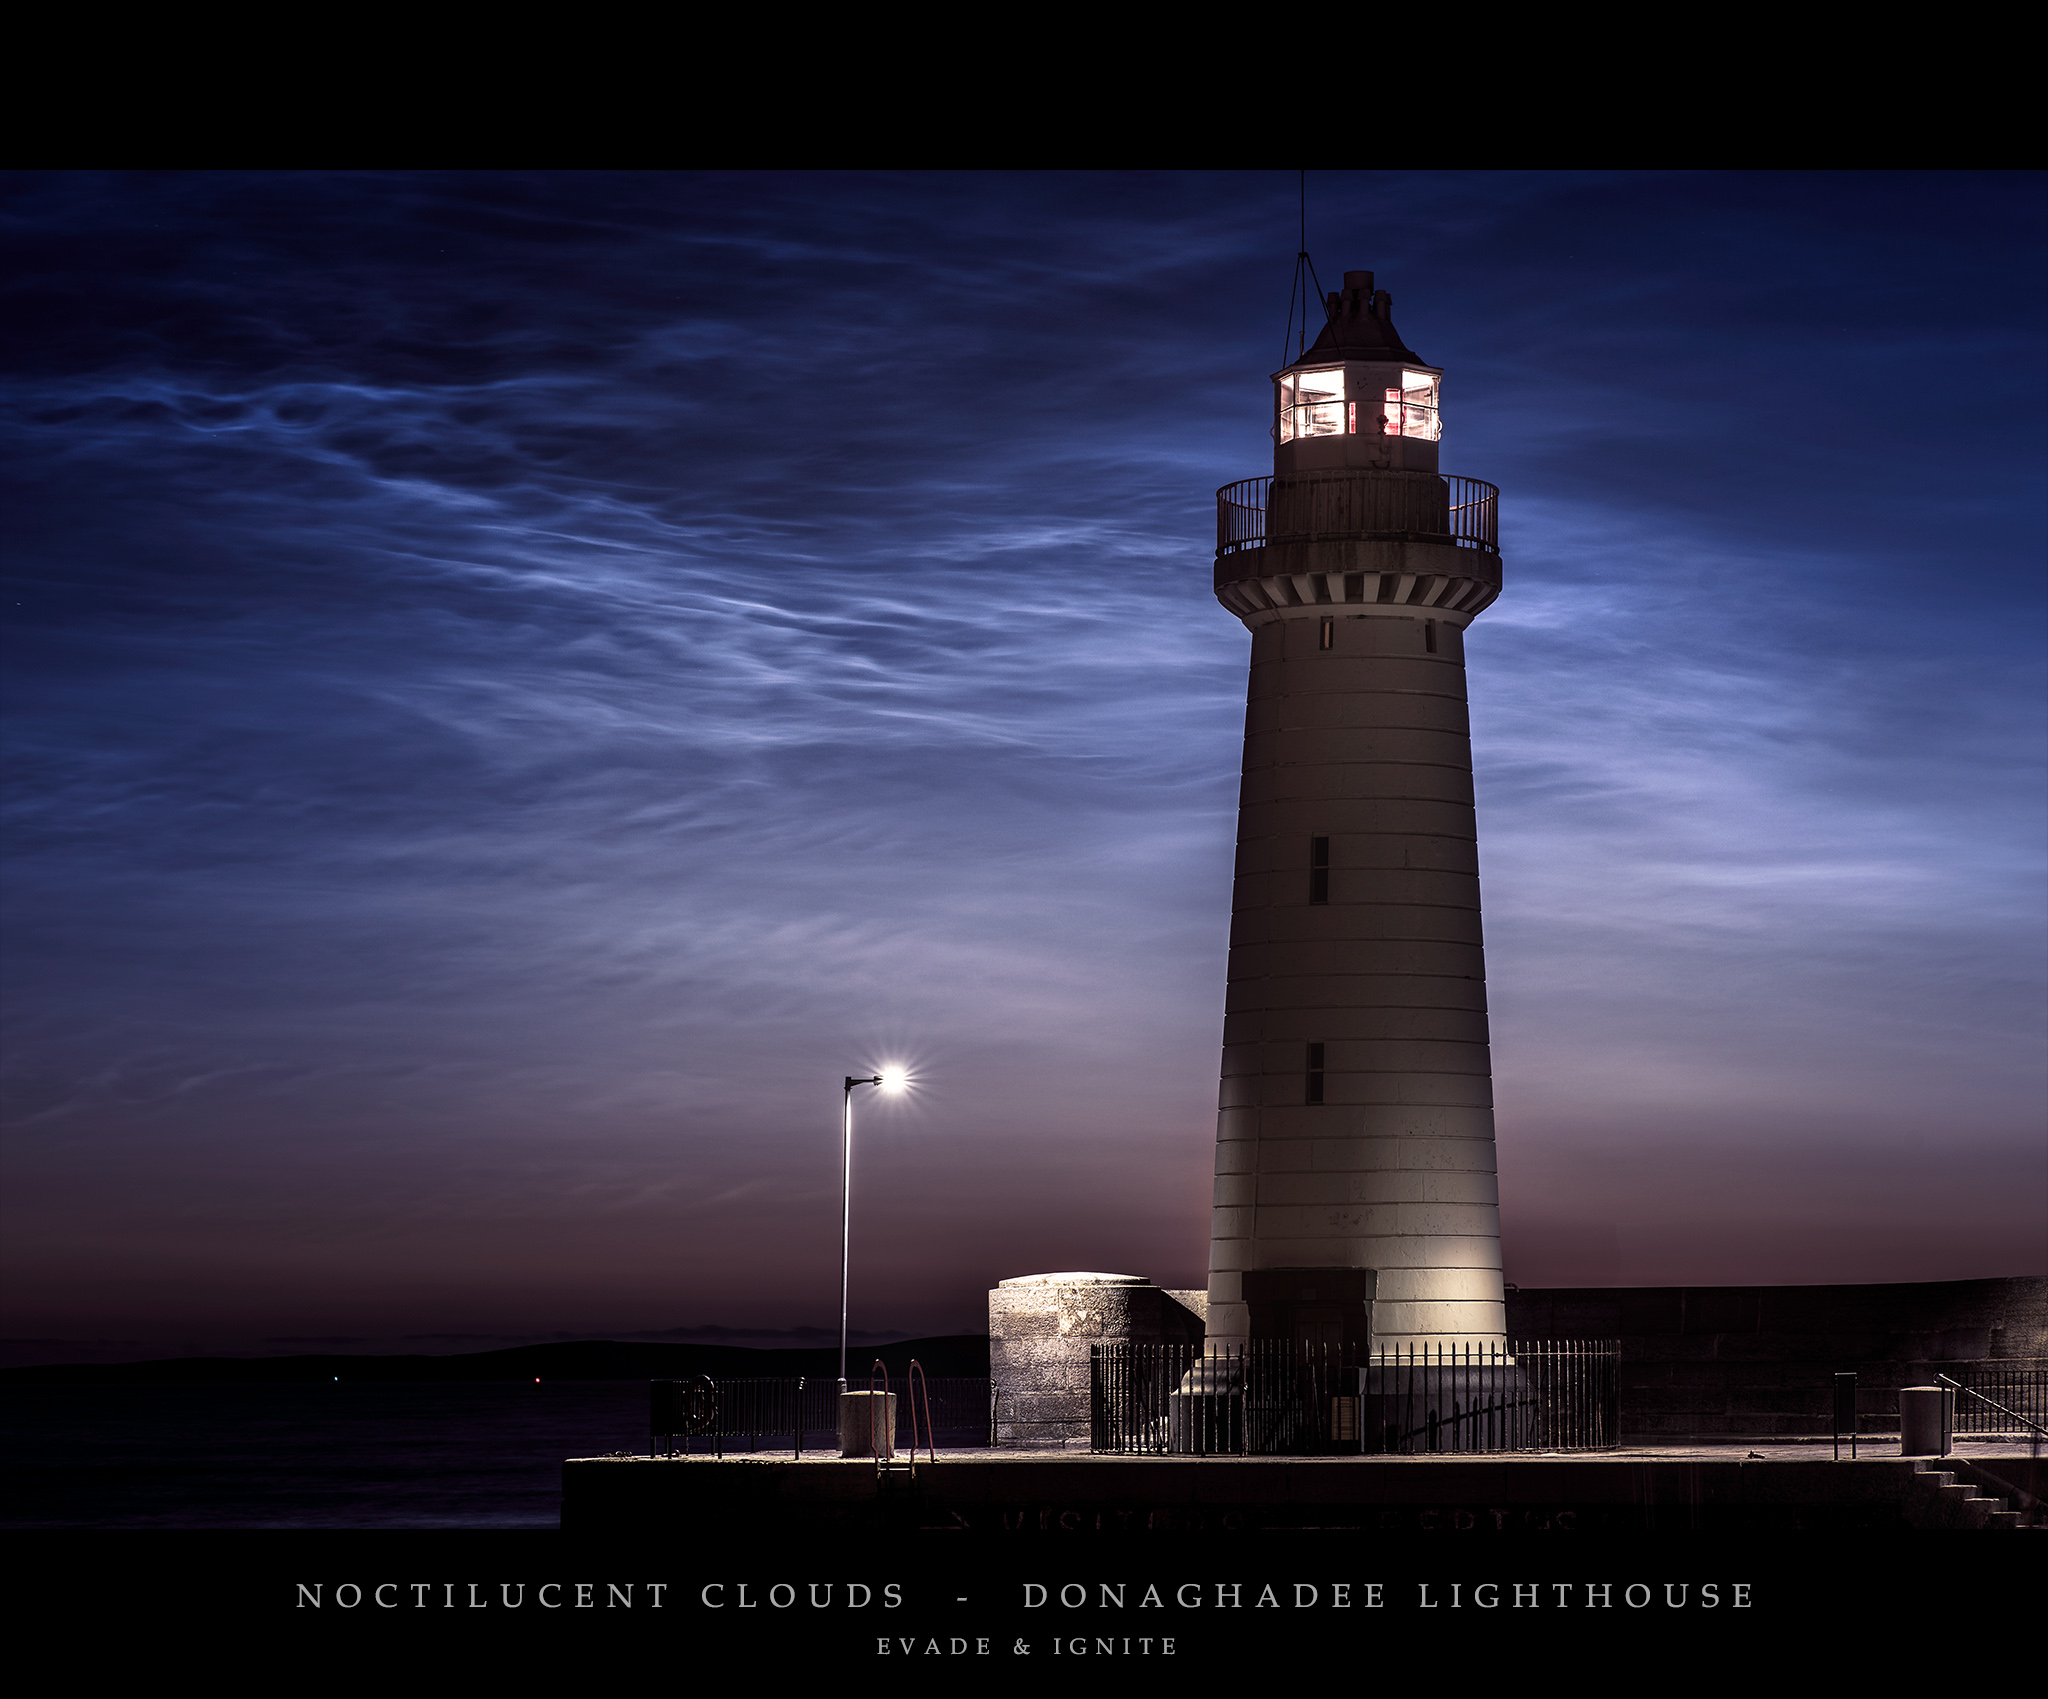 Noctilucent Clouds - Donaghadee